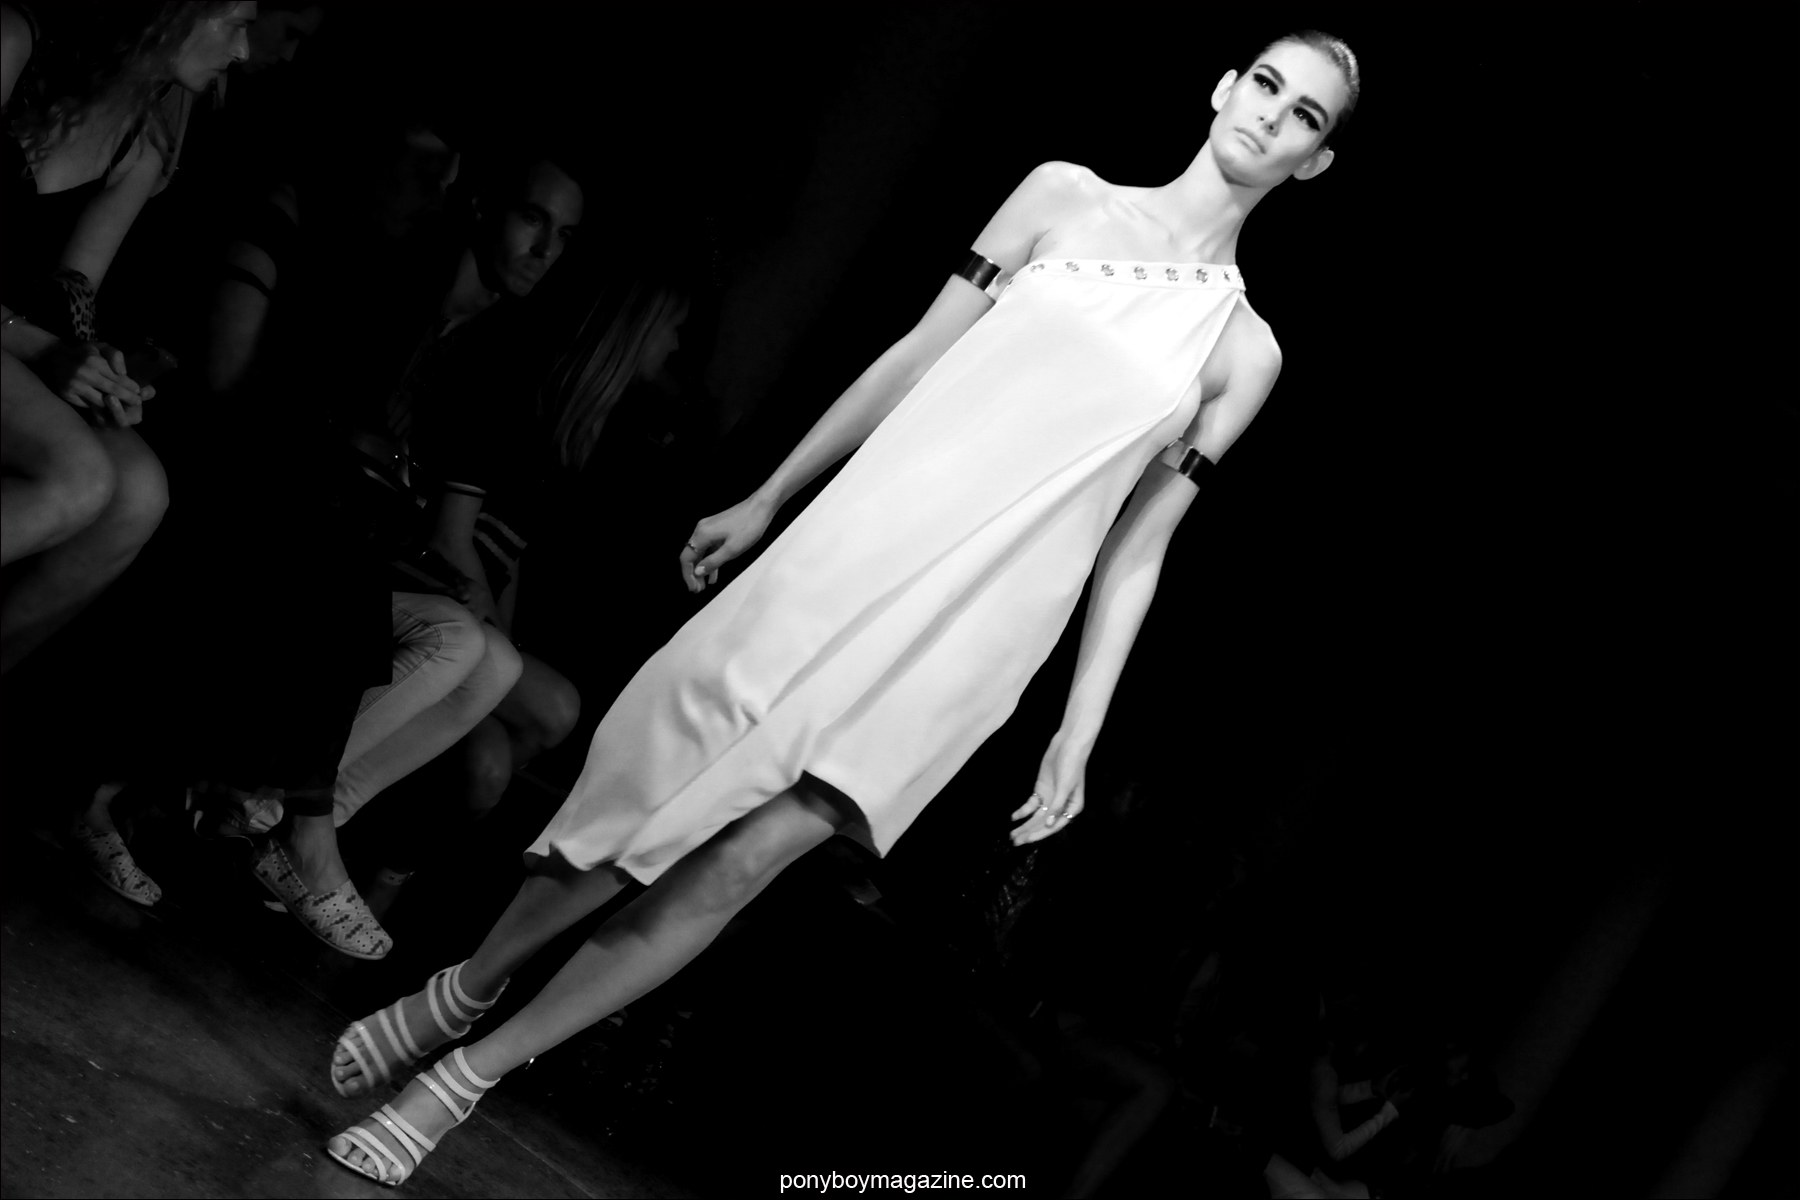 A model on the runway in a white one-shouldered dress, photographed at Milk Studios NY by Alexander Thompson for Ponyboy Magazine.